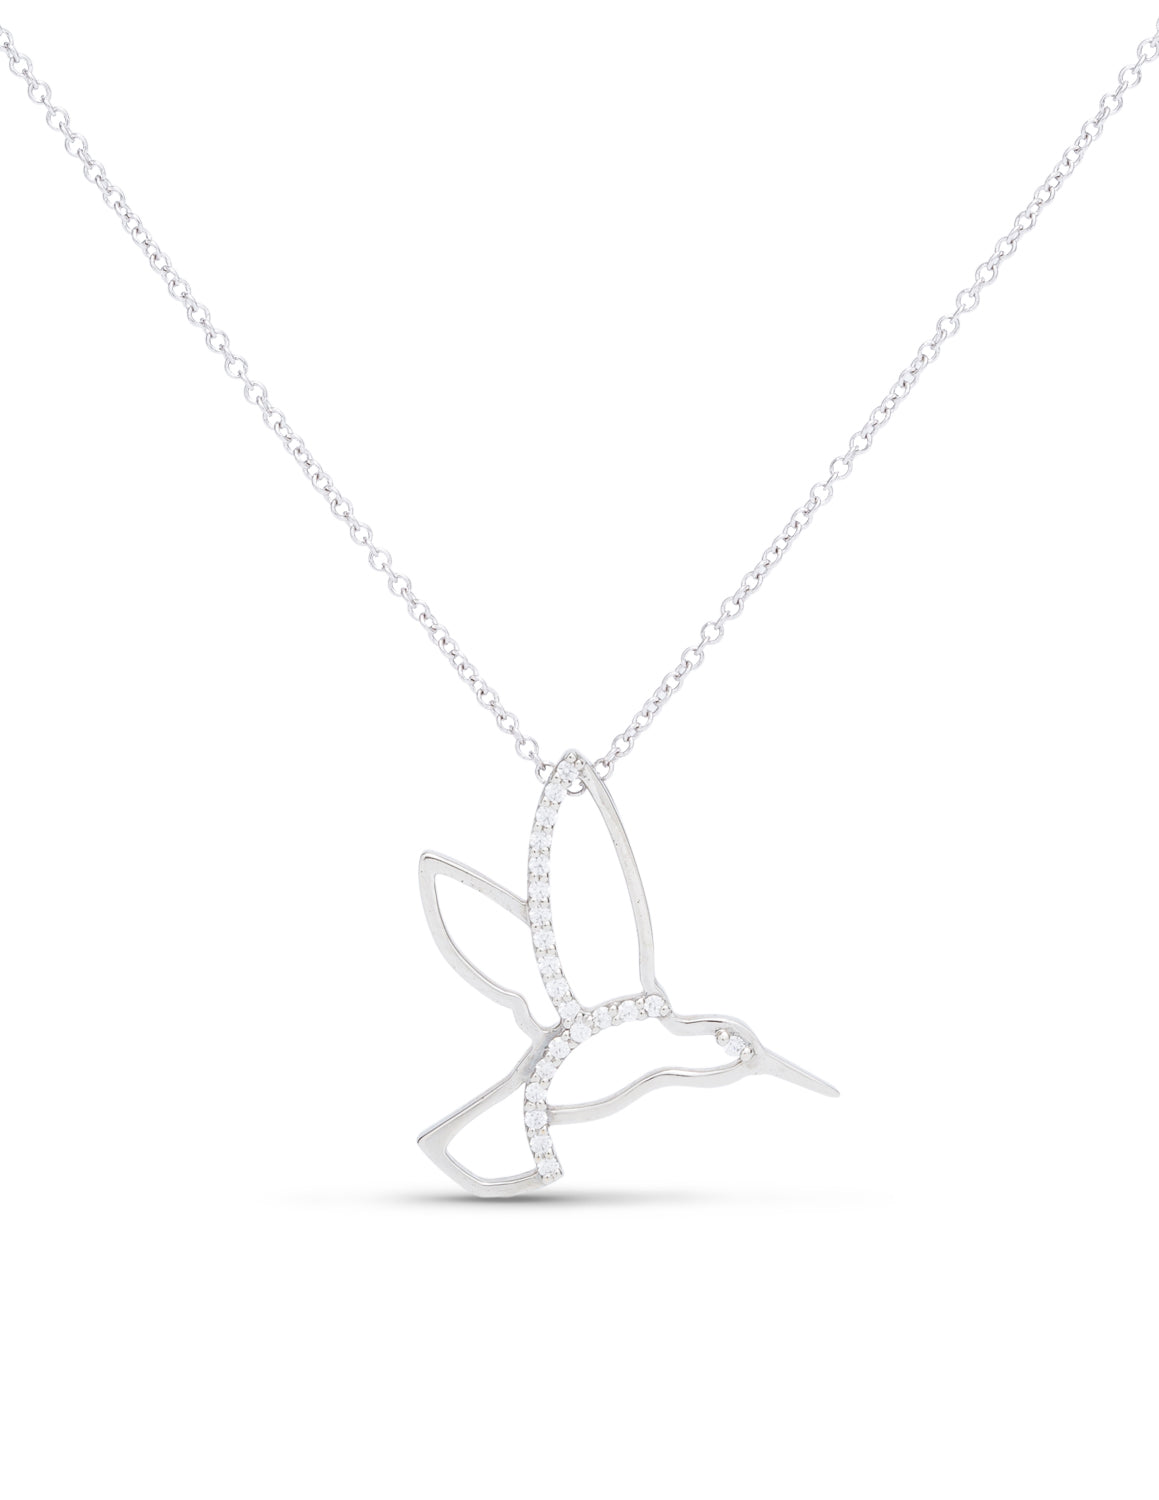 White Gold and Diamond Hummingbird Pendant - Charles Koll Jewellers